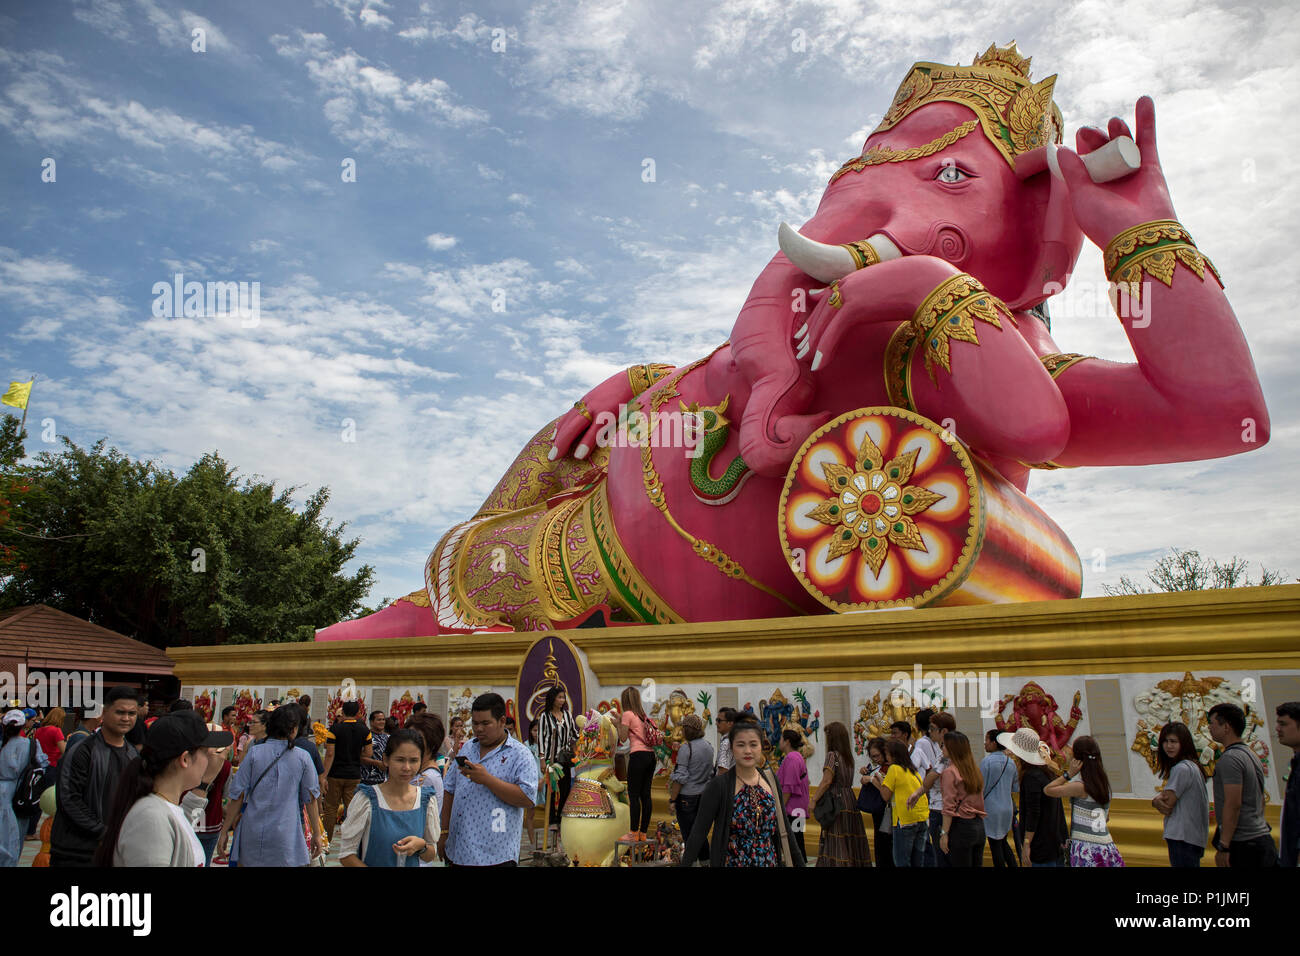 CHACHOENGSAO THAILAND-JUNE10,2018:large number of tourist taking a photograph in front of pink ganesha statue at wat saman rattanaram most popular tra - Stock Image